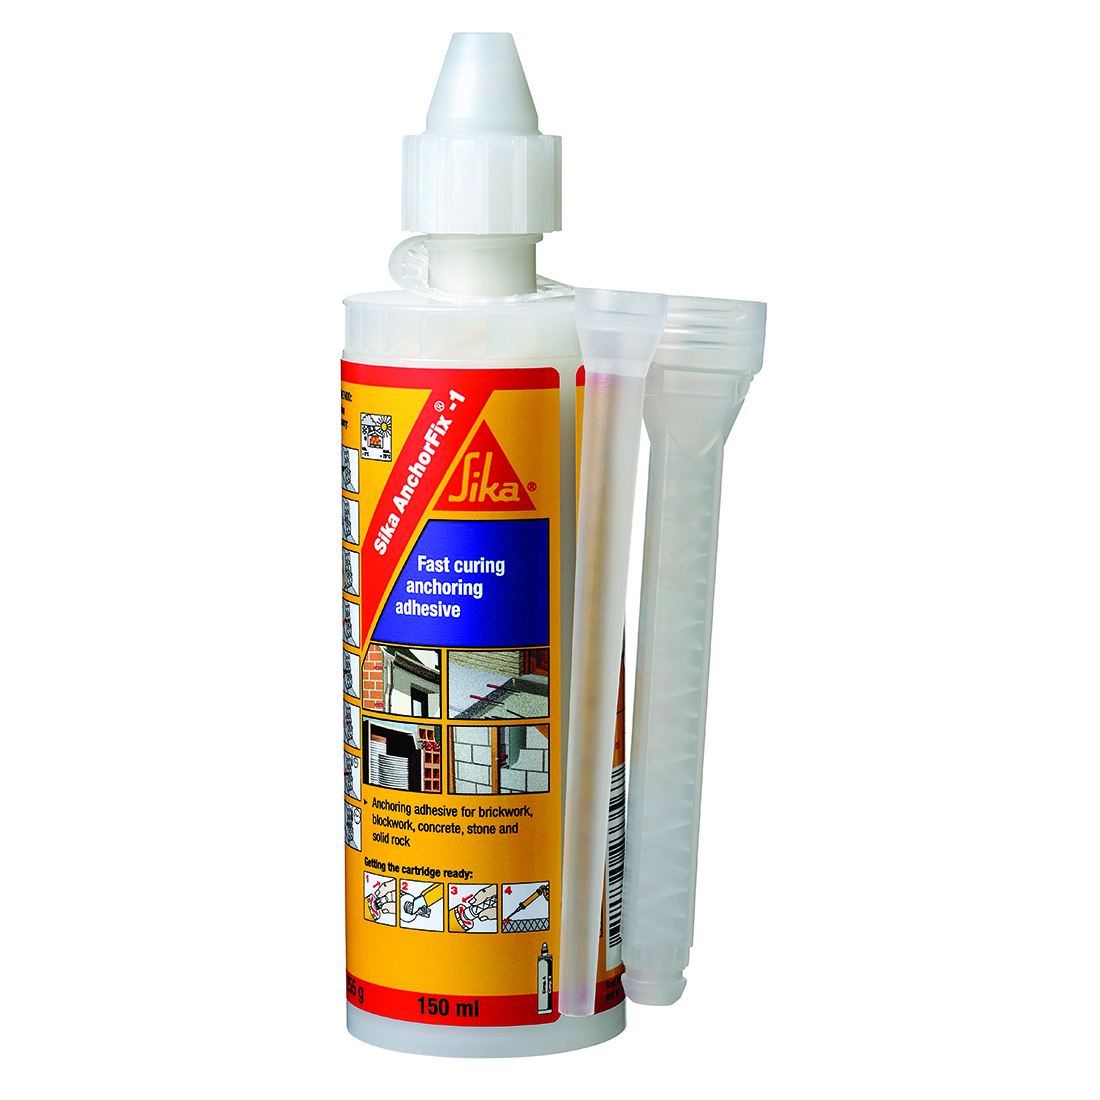 Anchorfix 1 150ml Fast Curling Polyester Anchoring Adhesive